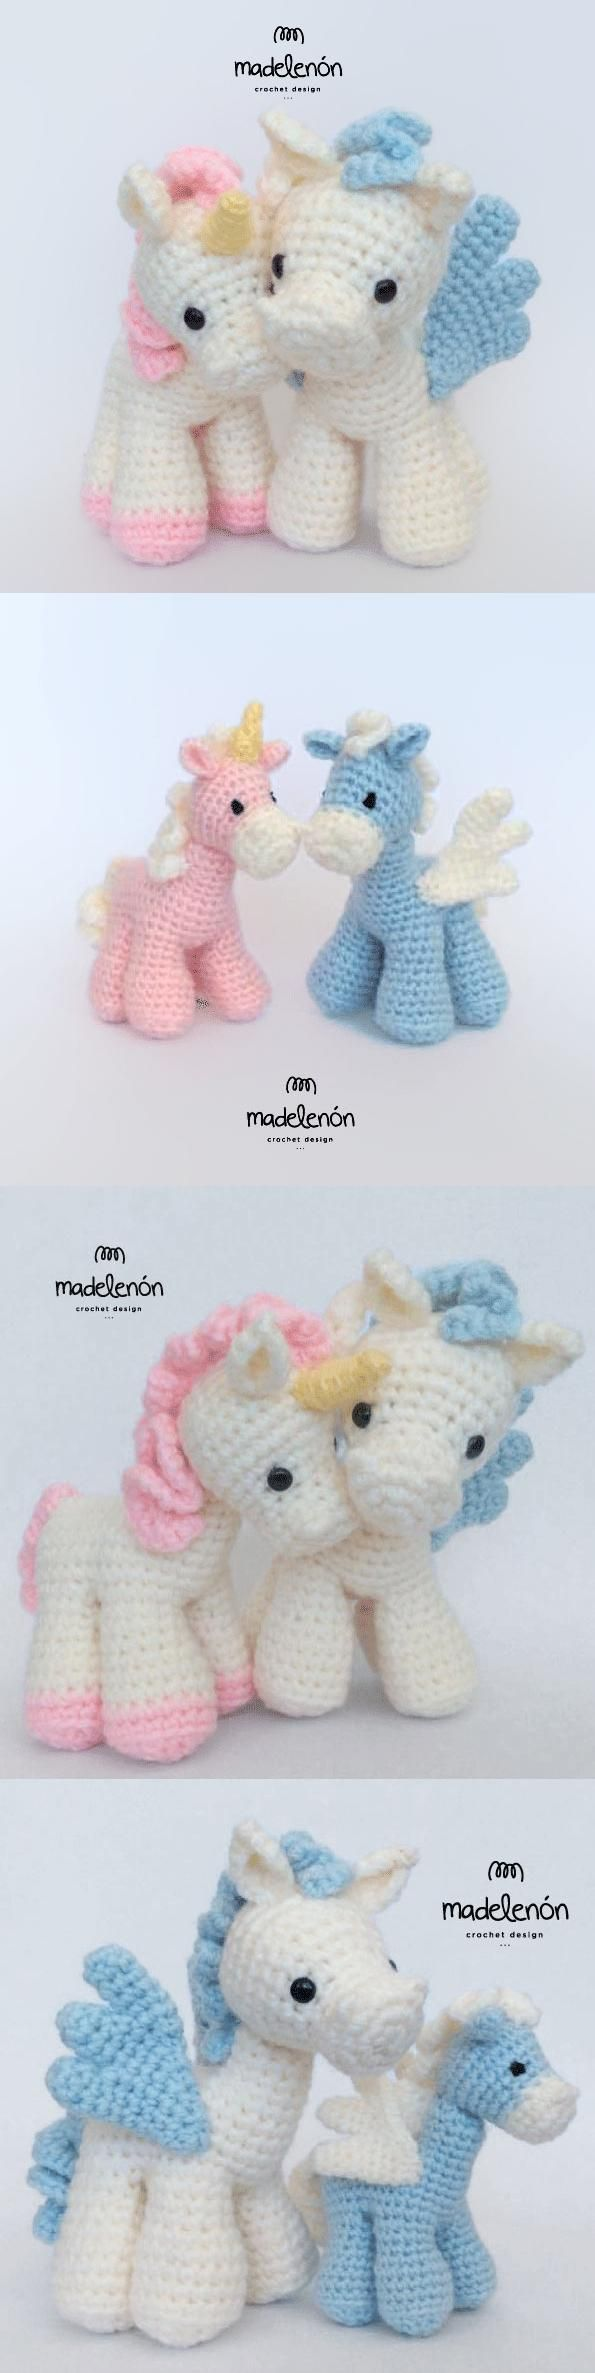 Fantasy Amigurumi Pattern                                                                                                                                                      More unicornio